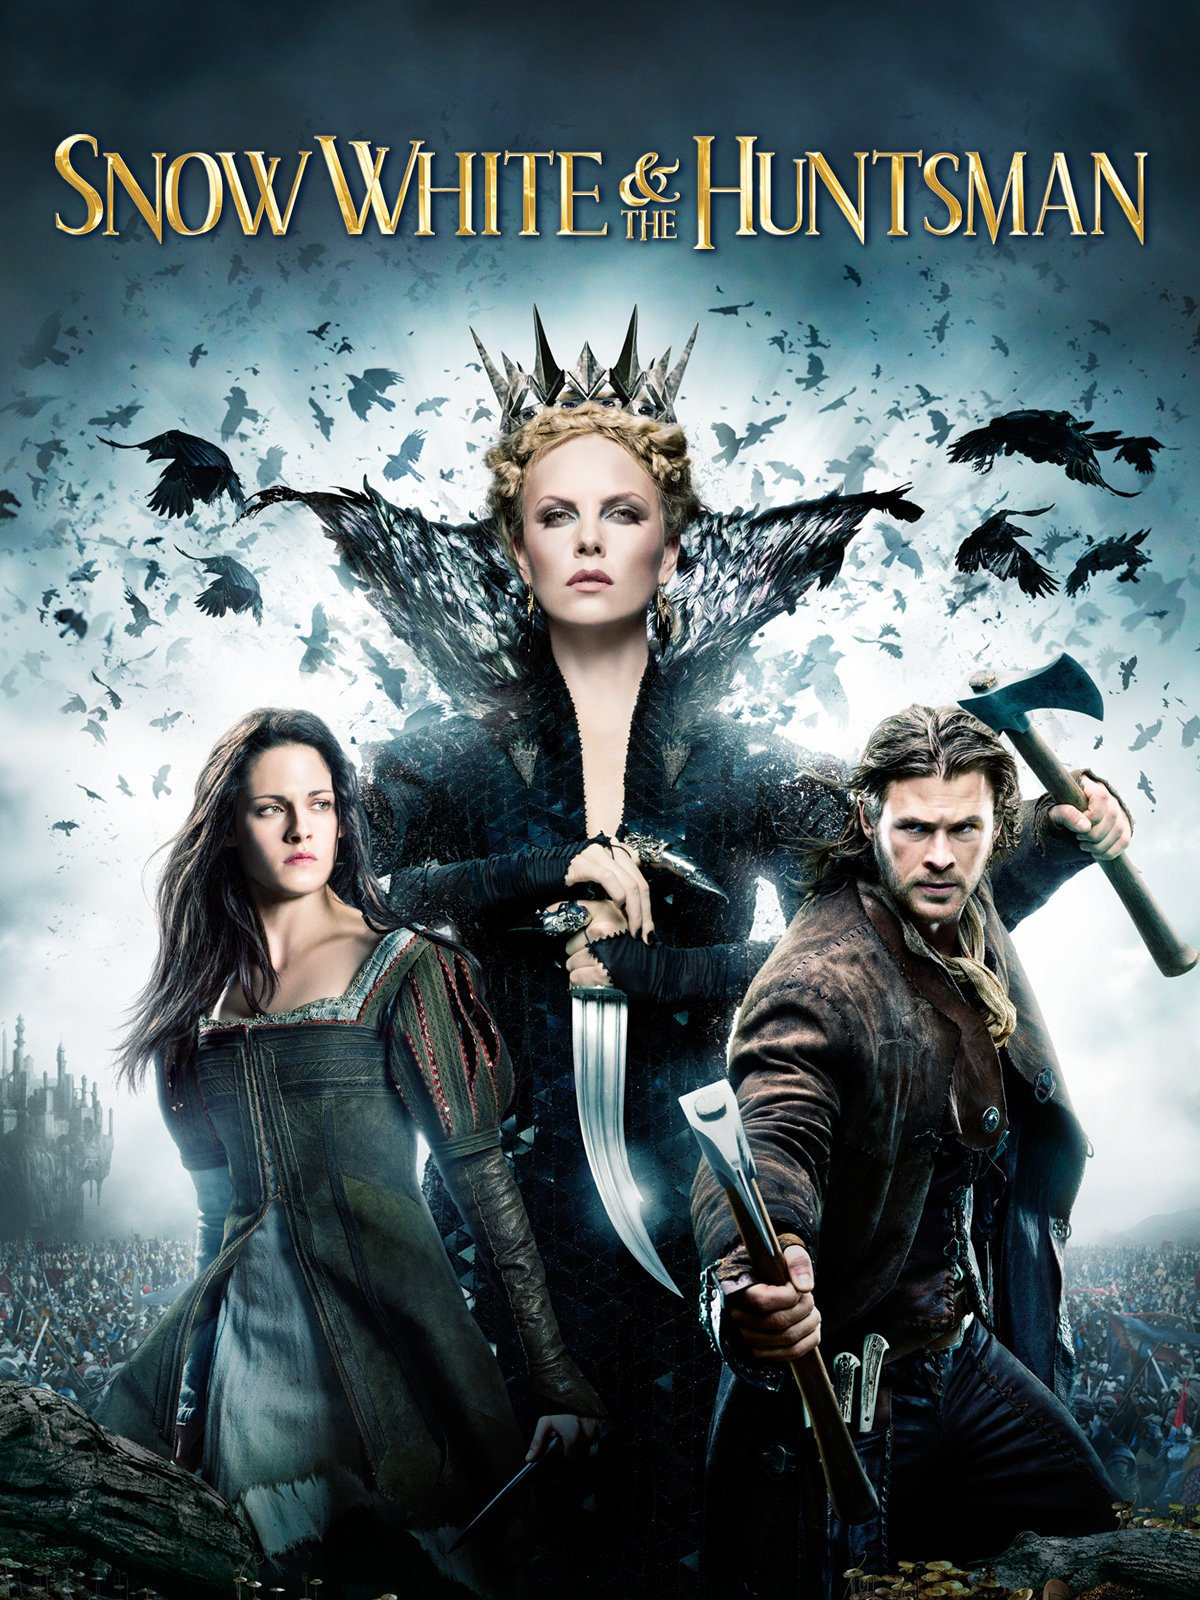 Snow White & The Huntsman by